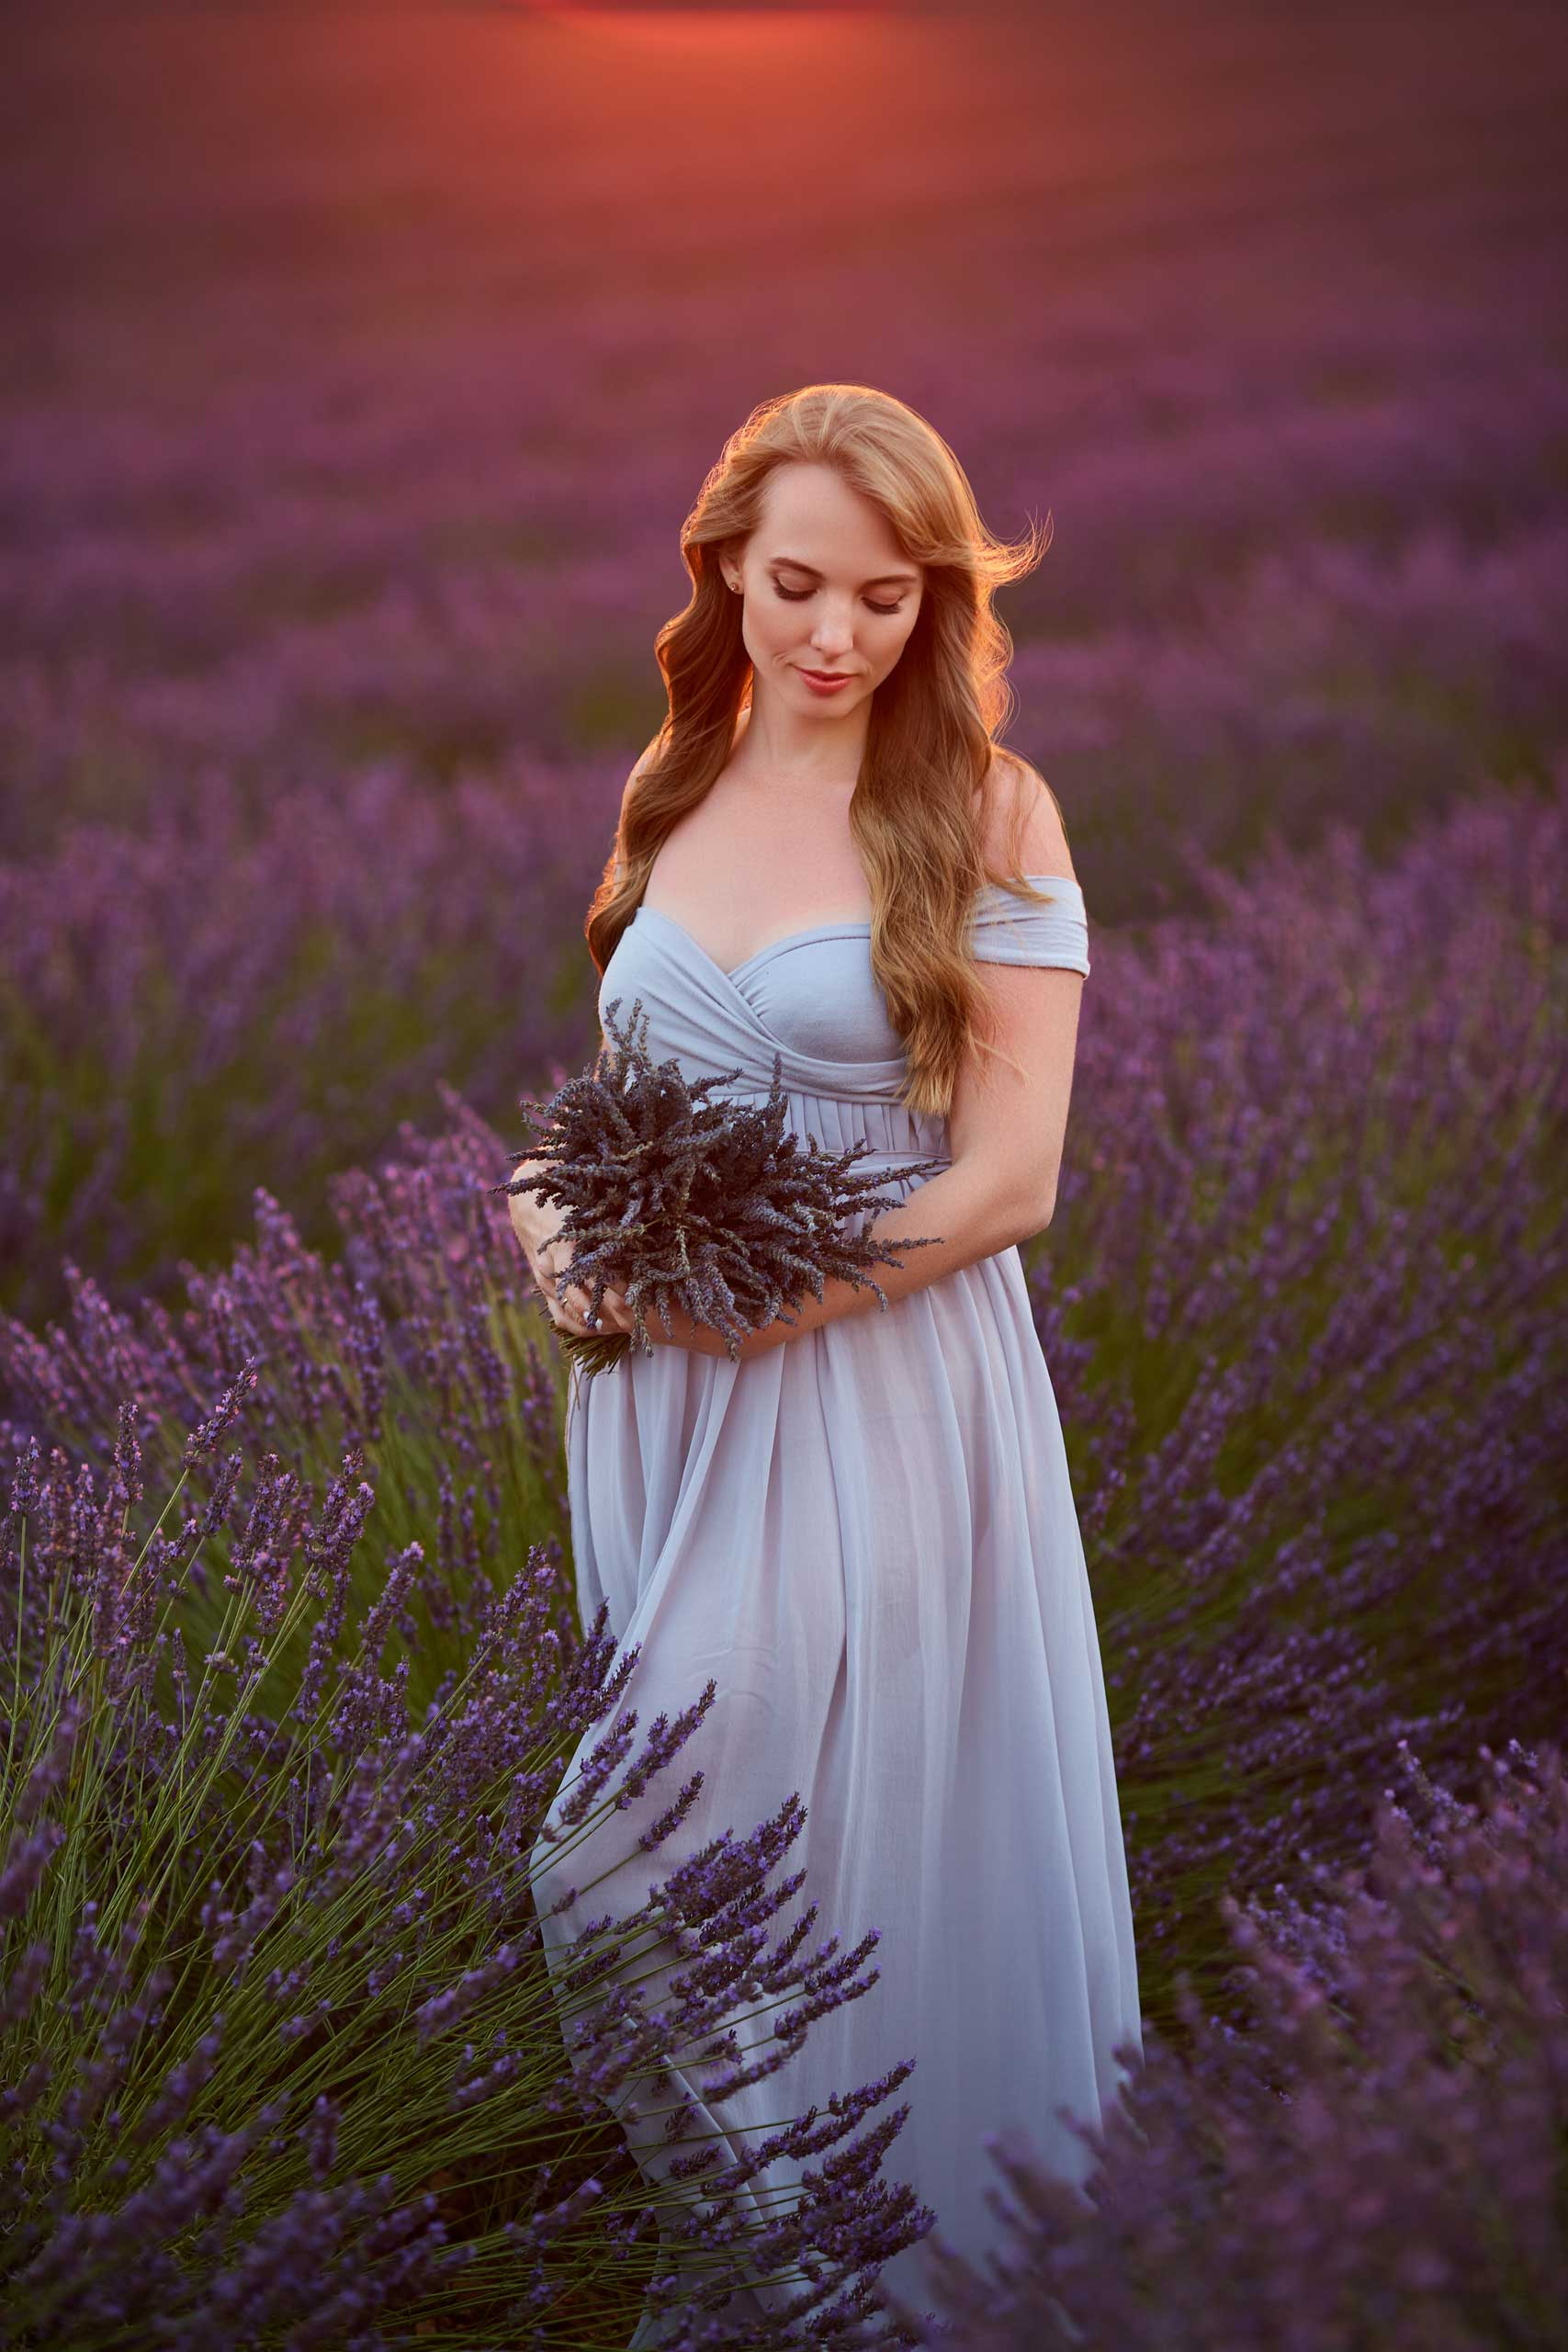 maternity photo session taken by Ramina Magid Photography in Provence